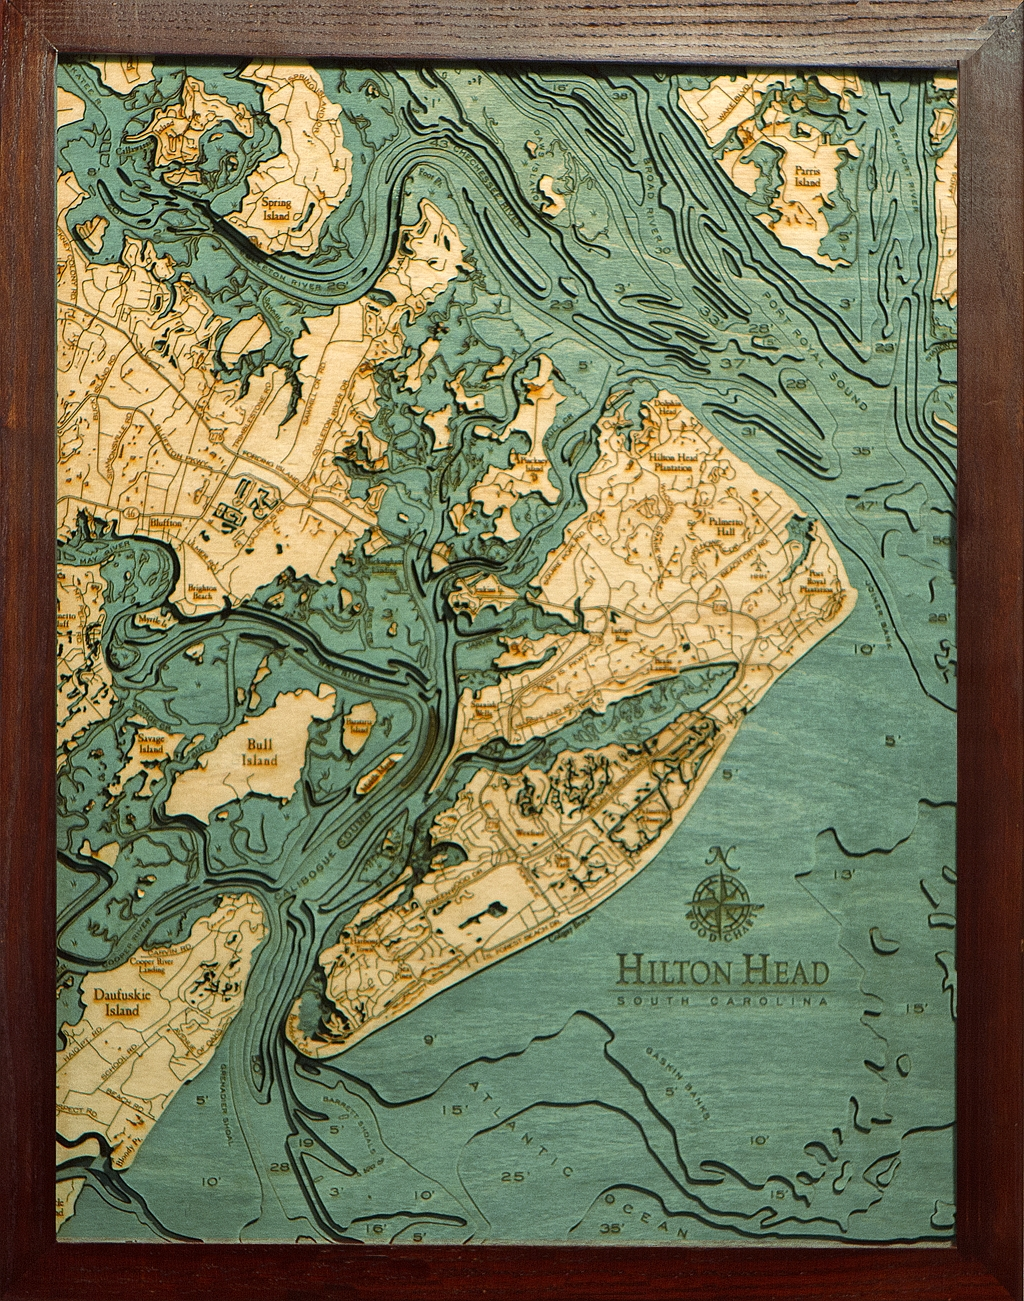 Custom Depth Map Of Hilton Head Island Sc Carved Lake Art